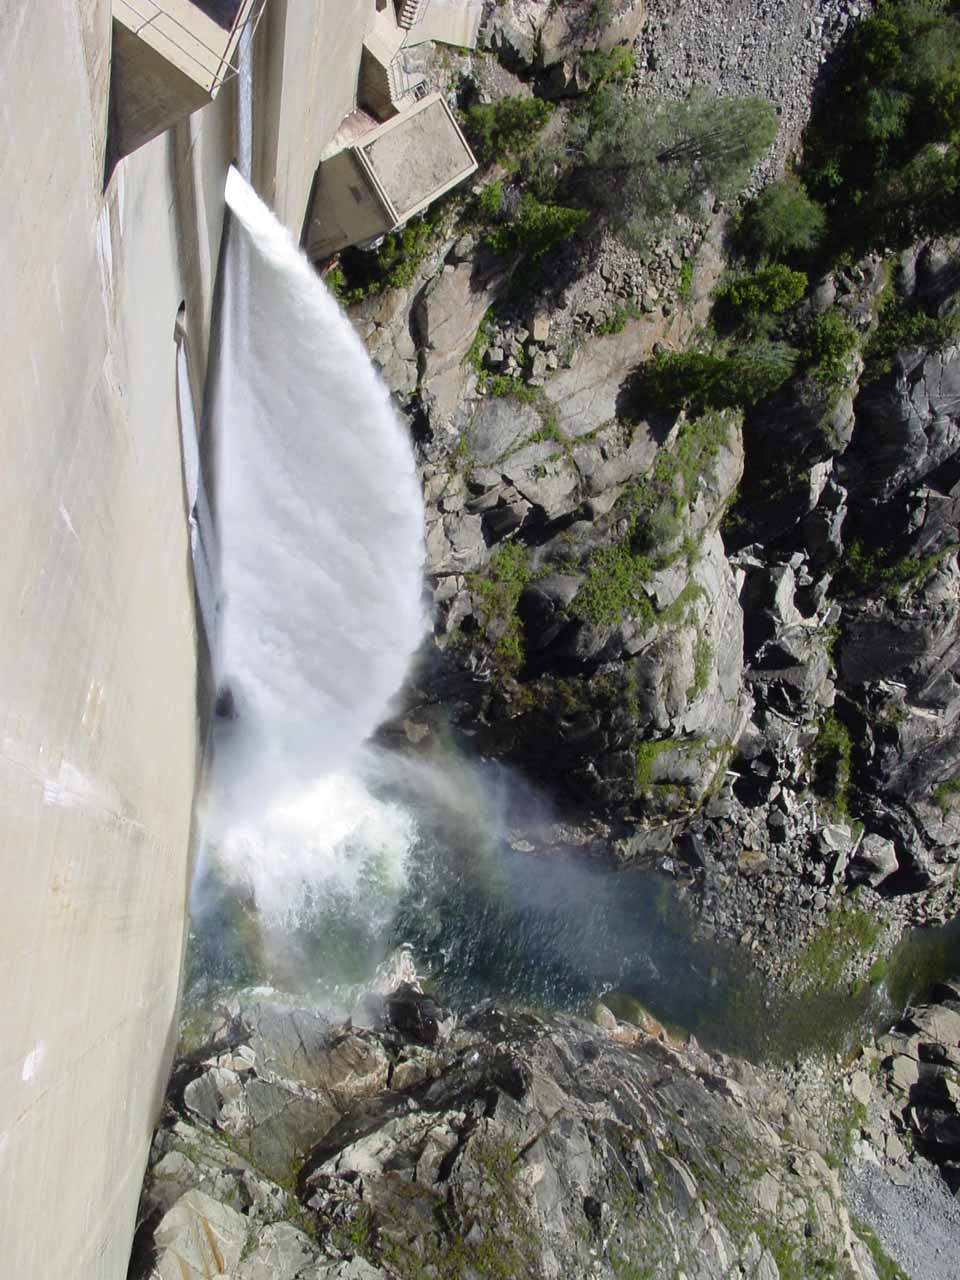 Hydroelectricity - one of the uses of waterfalls